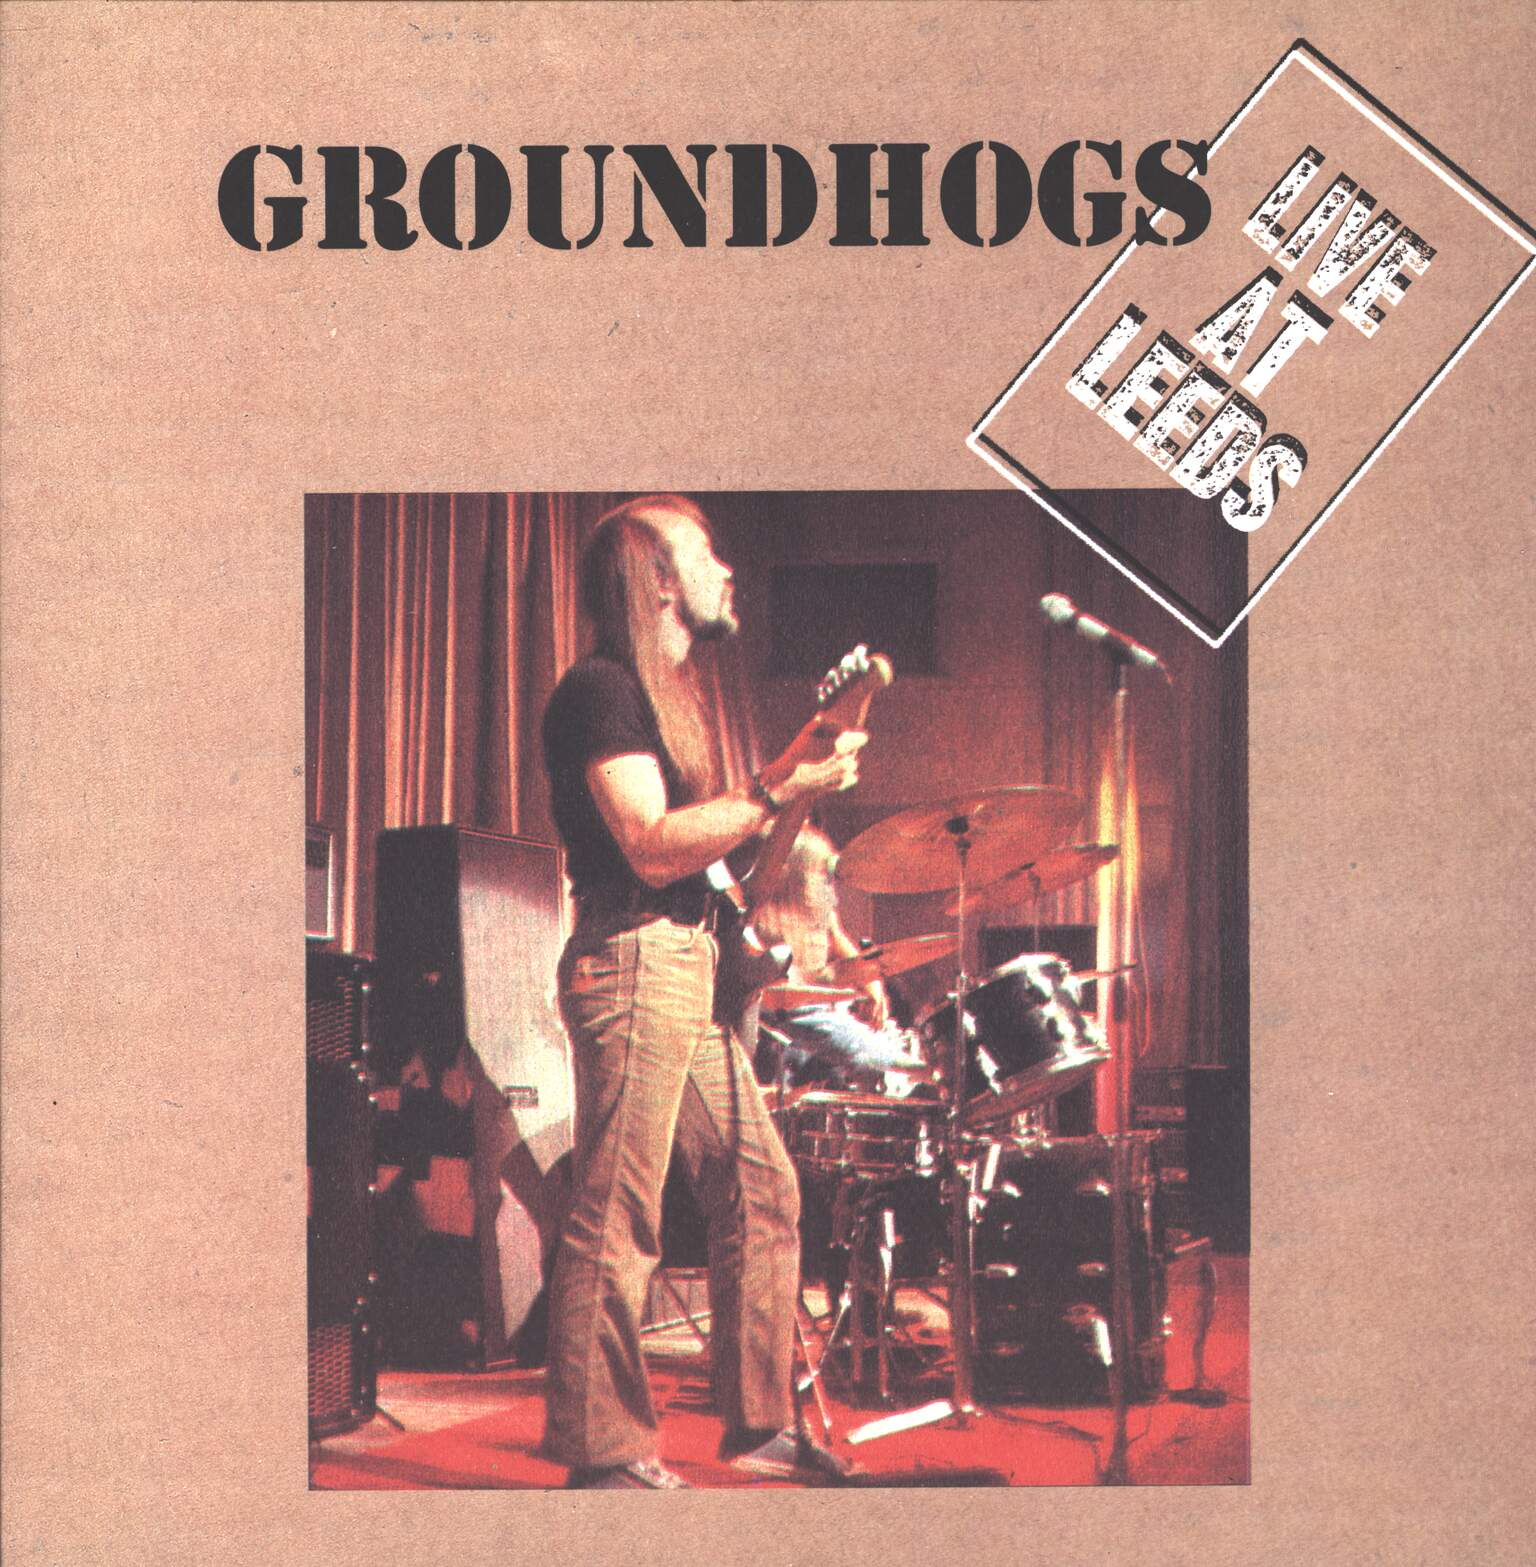 The Groundhogs: Live At Leeds, 1×LP (Vinyl)